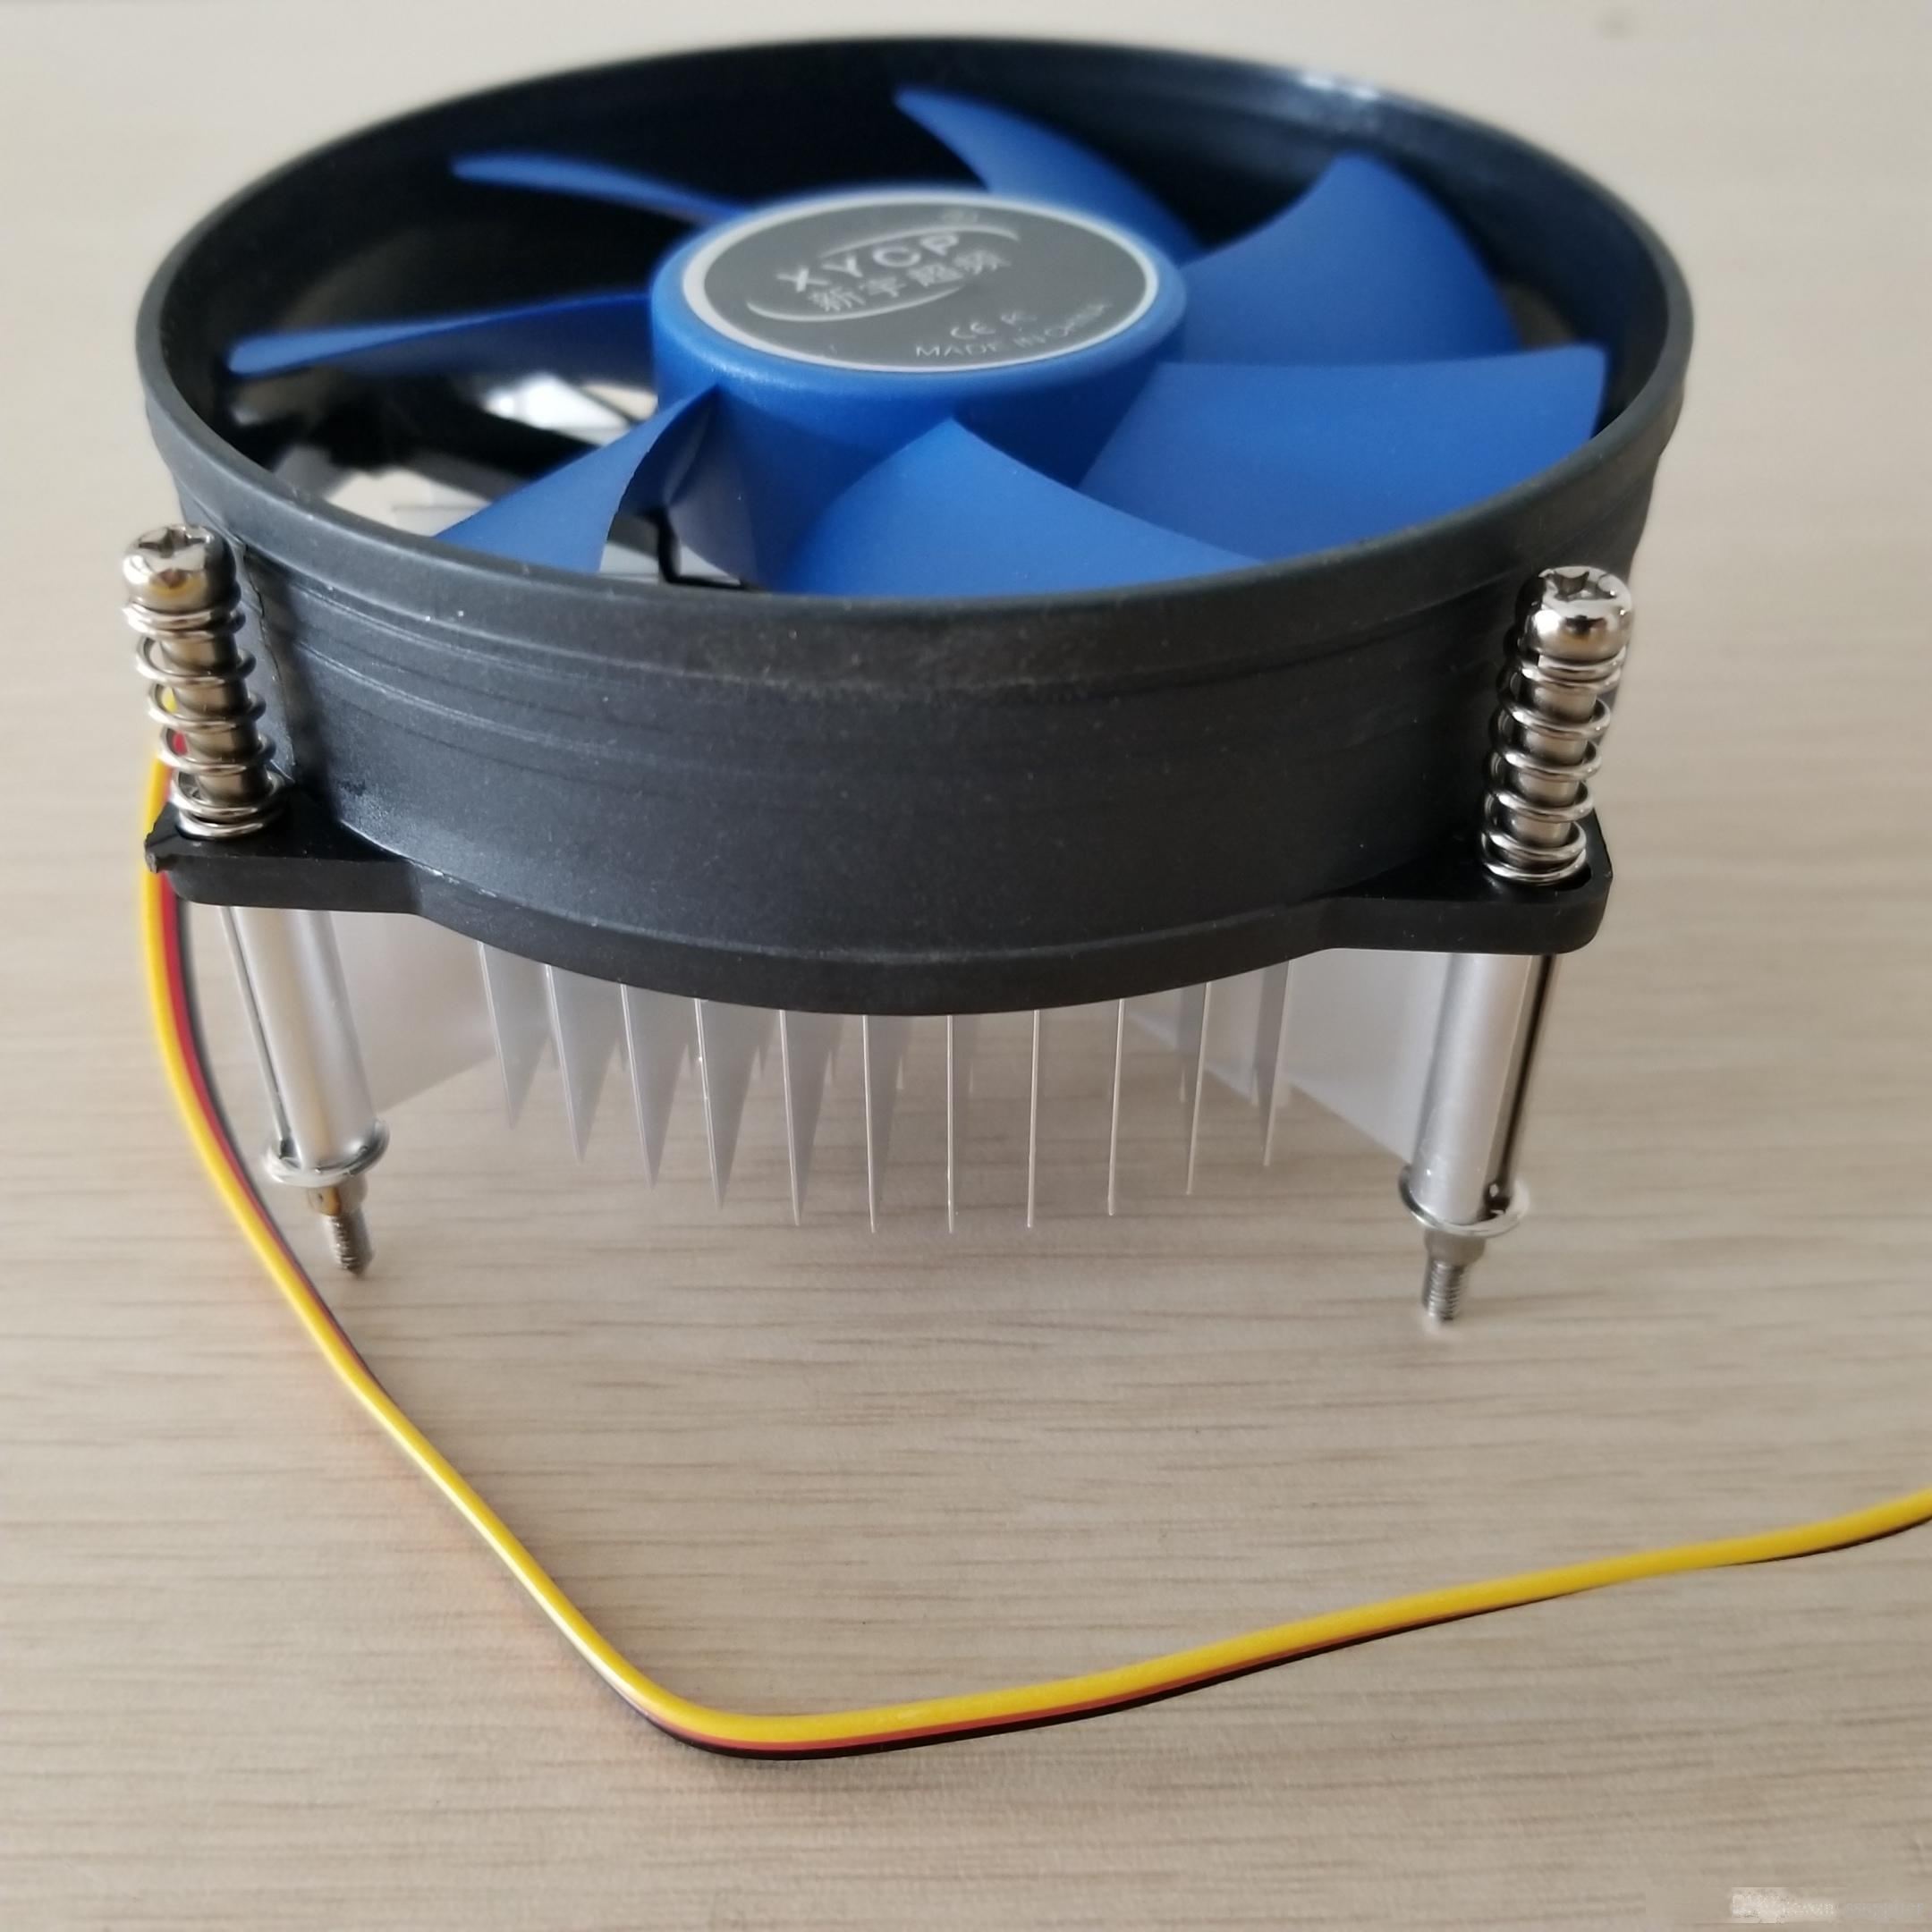 Overclocking & Ultra-Quiet CPU Heatsink Radiator Cooler Fan Intel 755Pin CPU Desktop Computer Fan